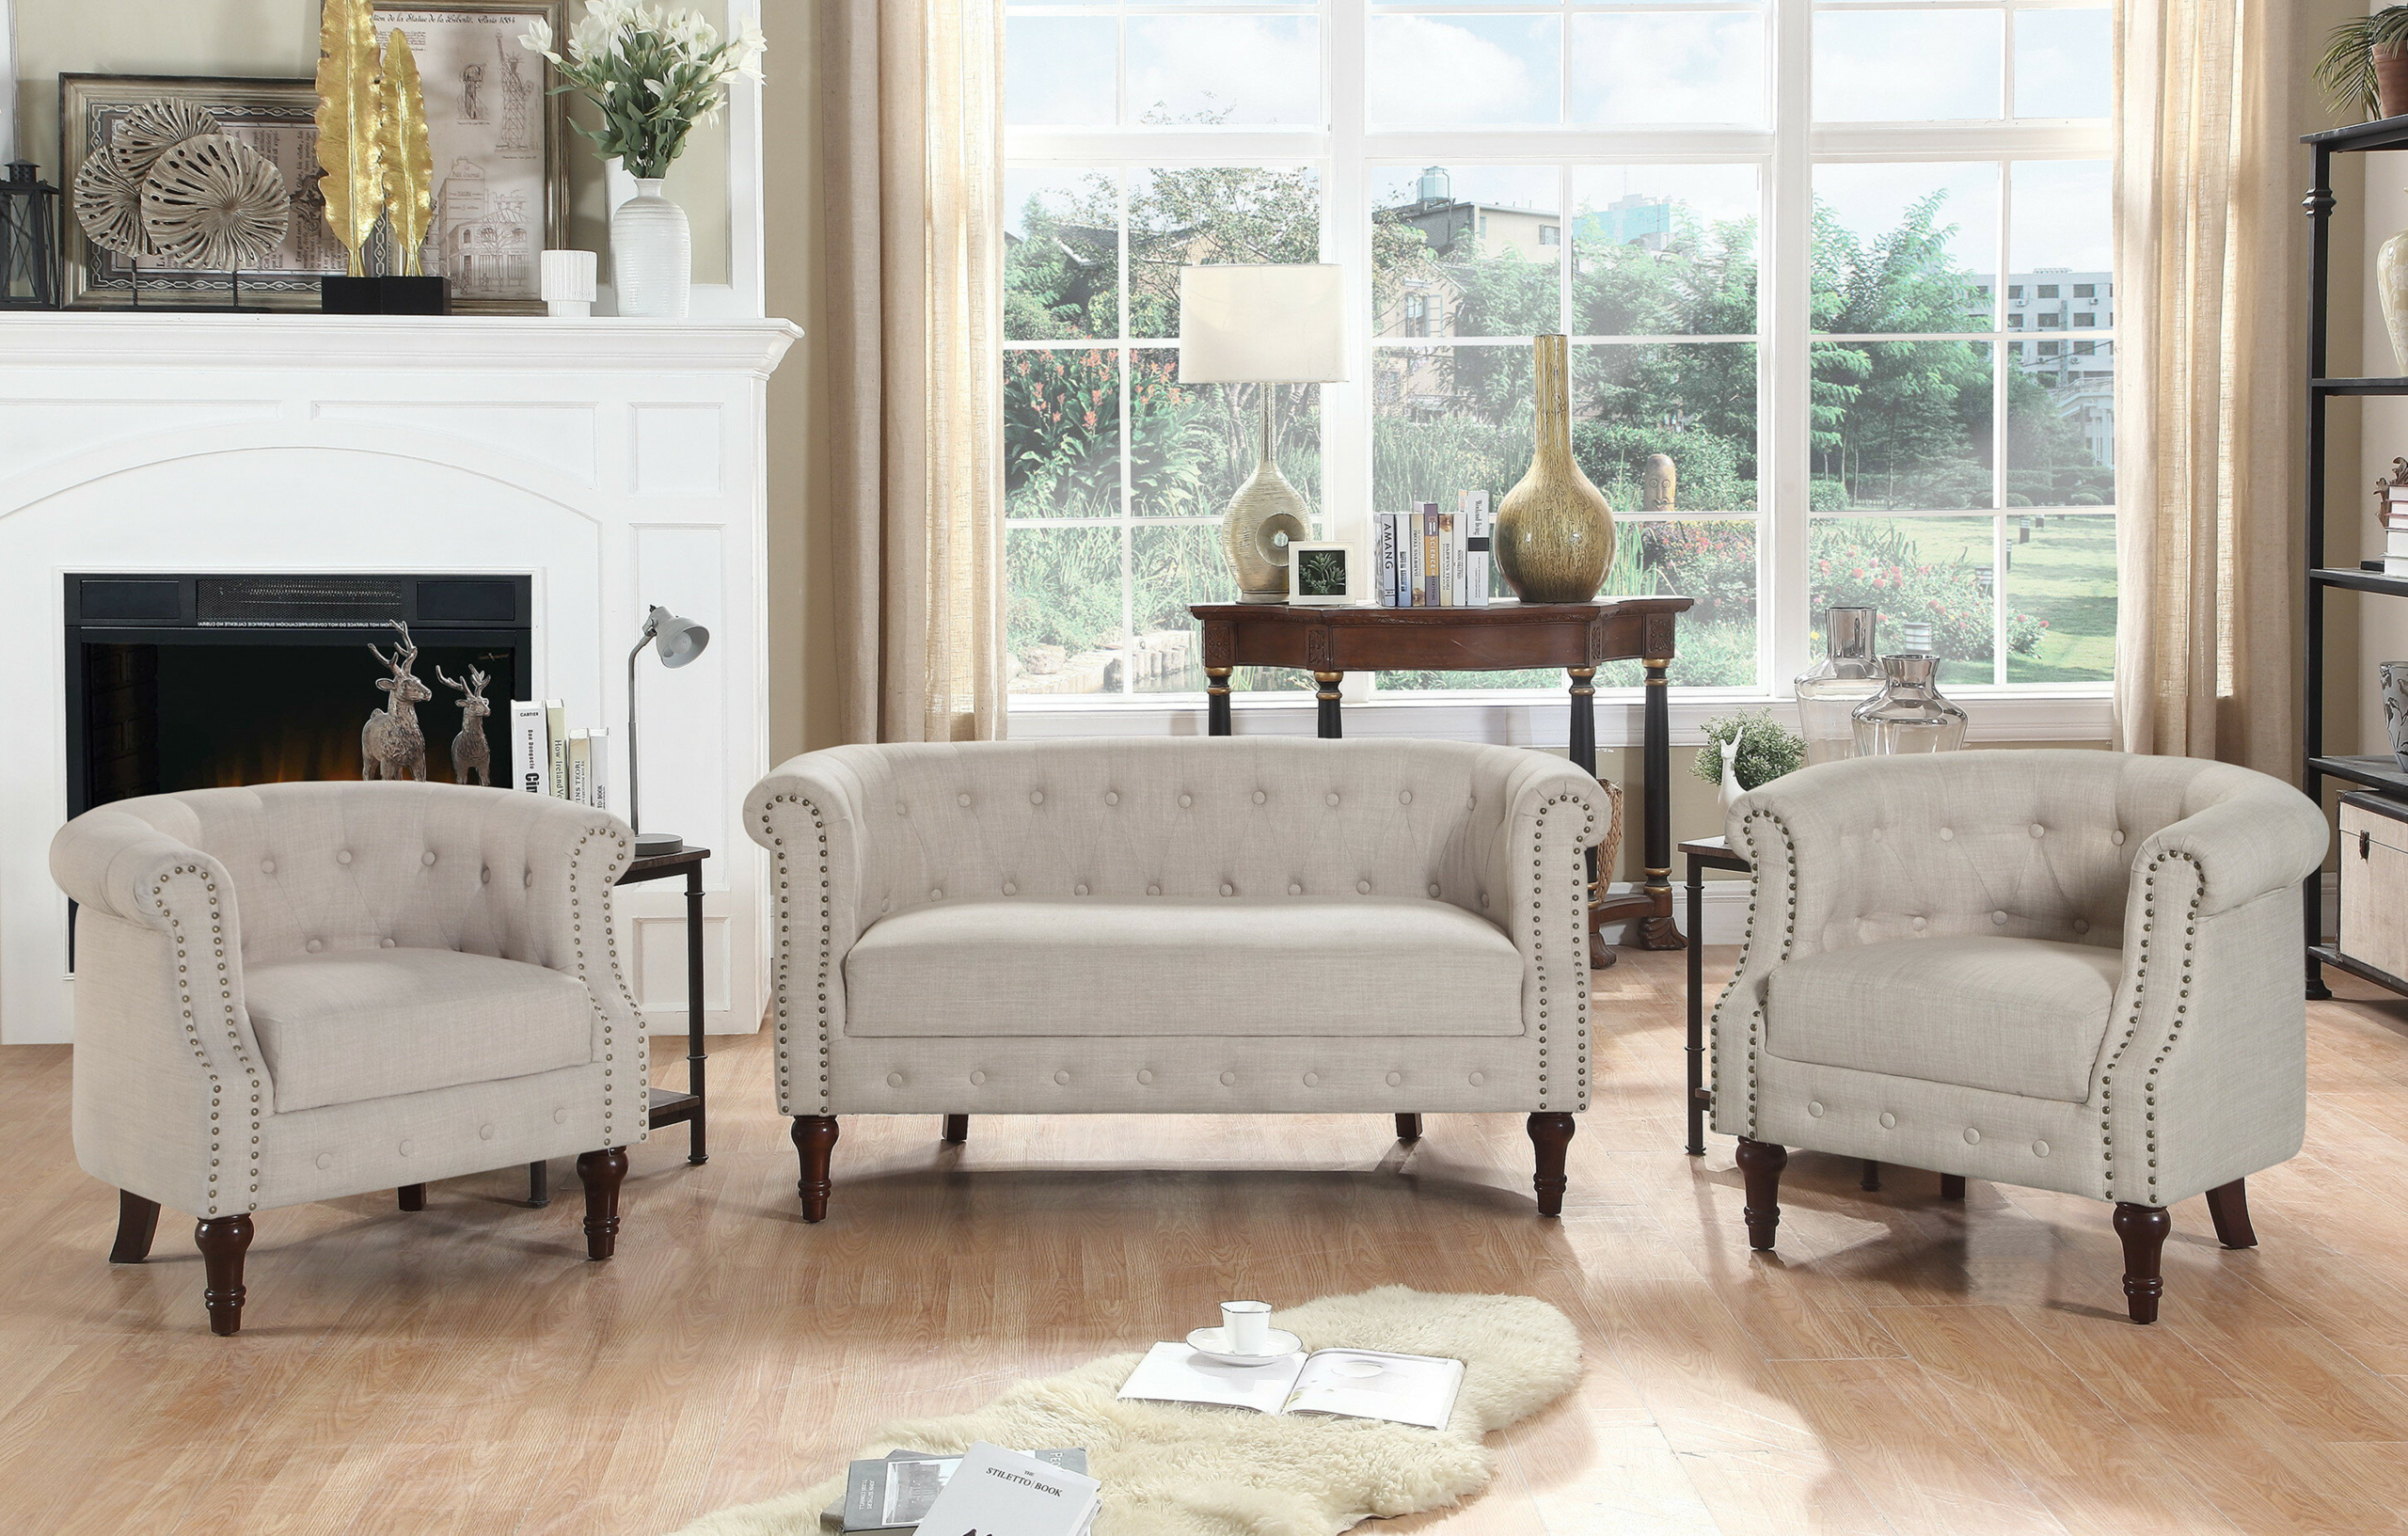 3 Piece Living Room Set You Ll Love In, 3 Piece Living Room Sets